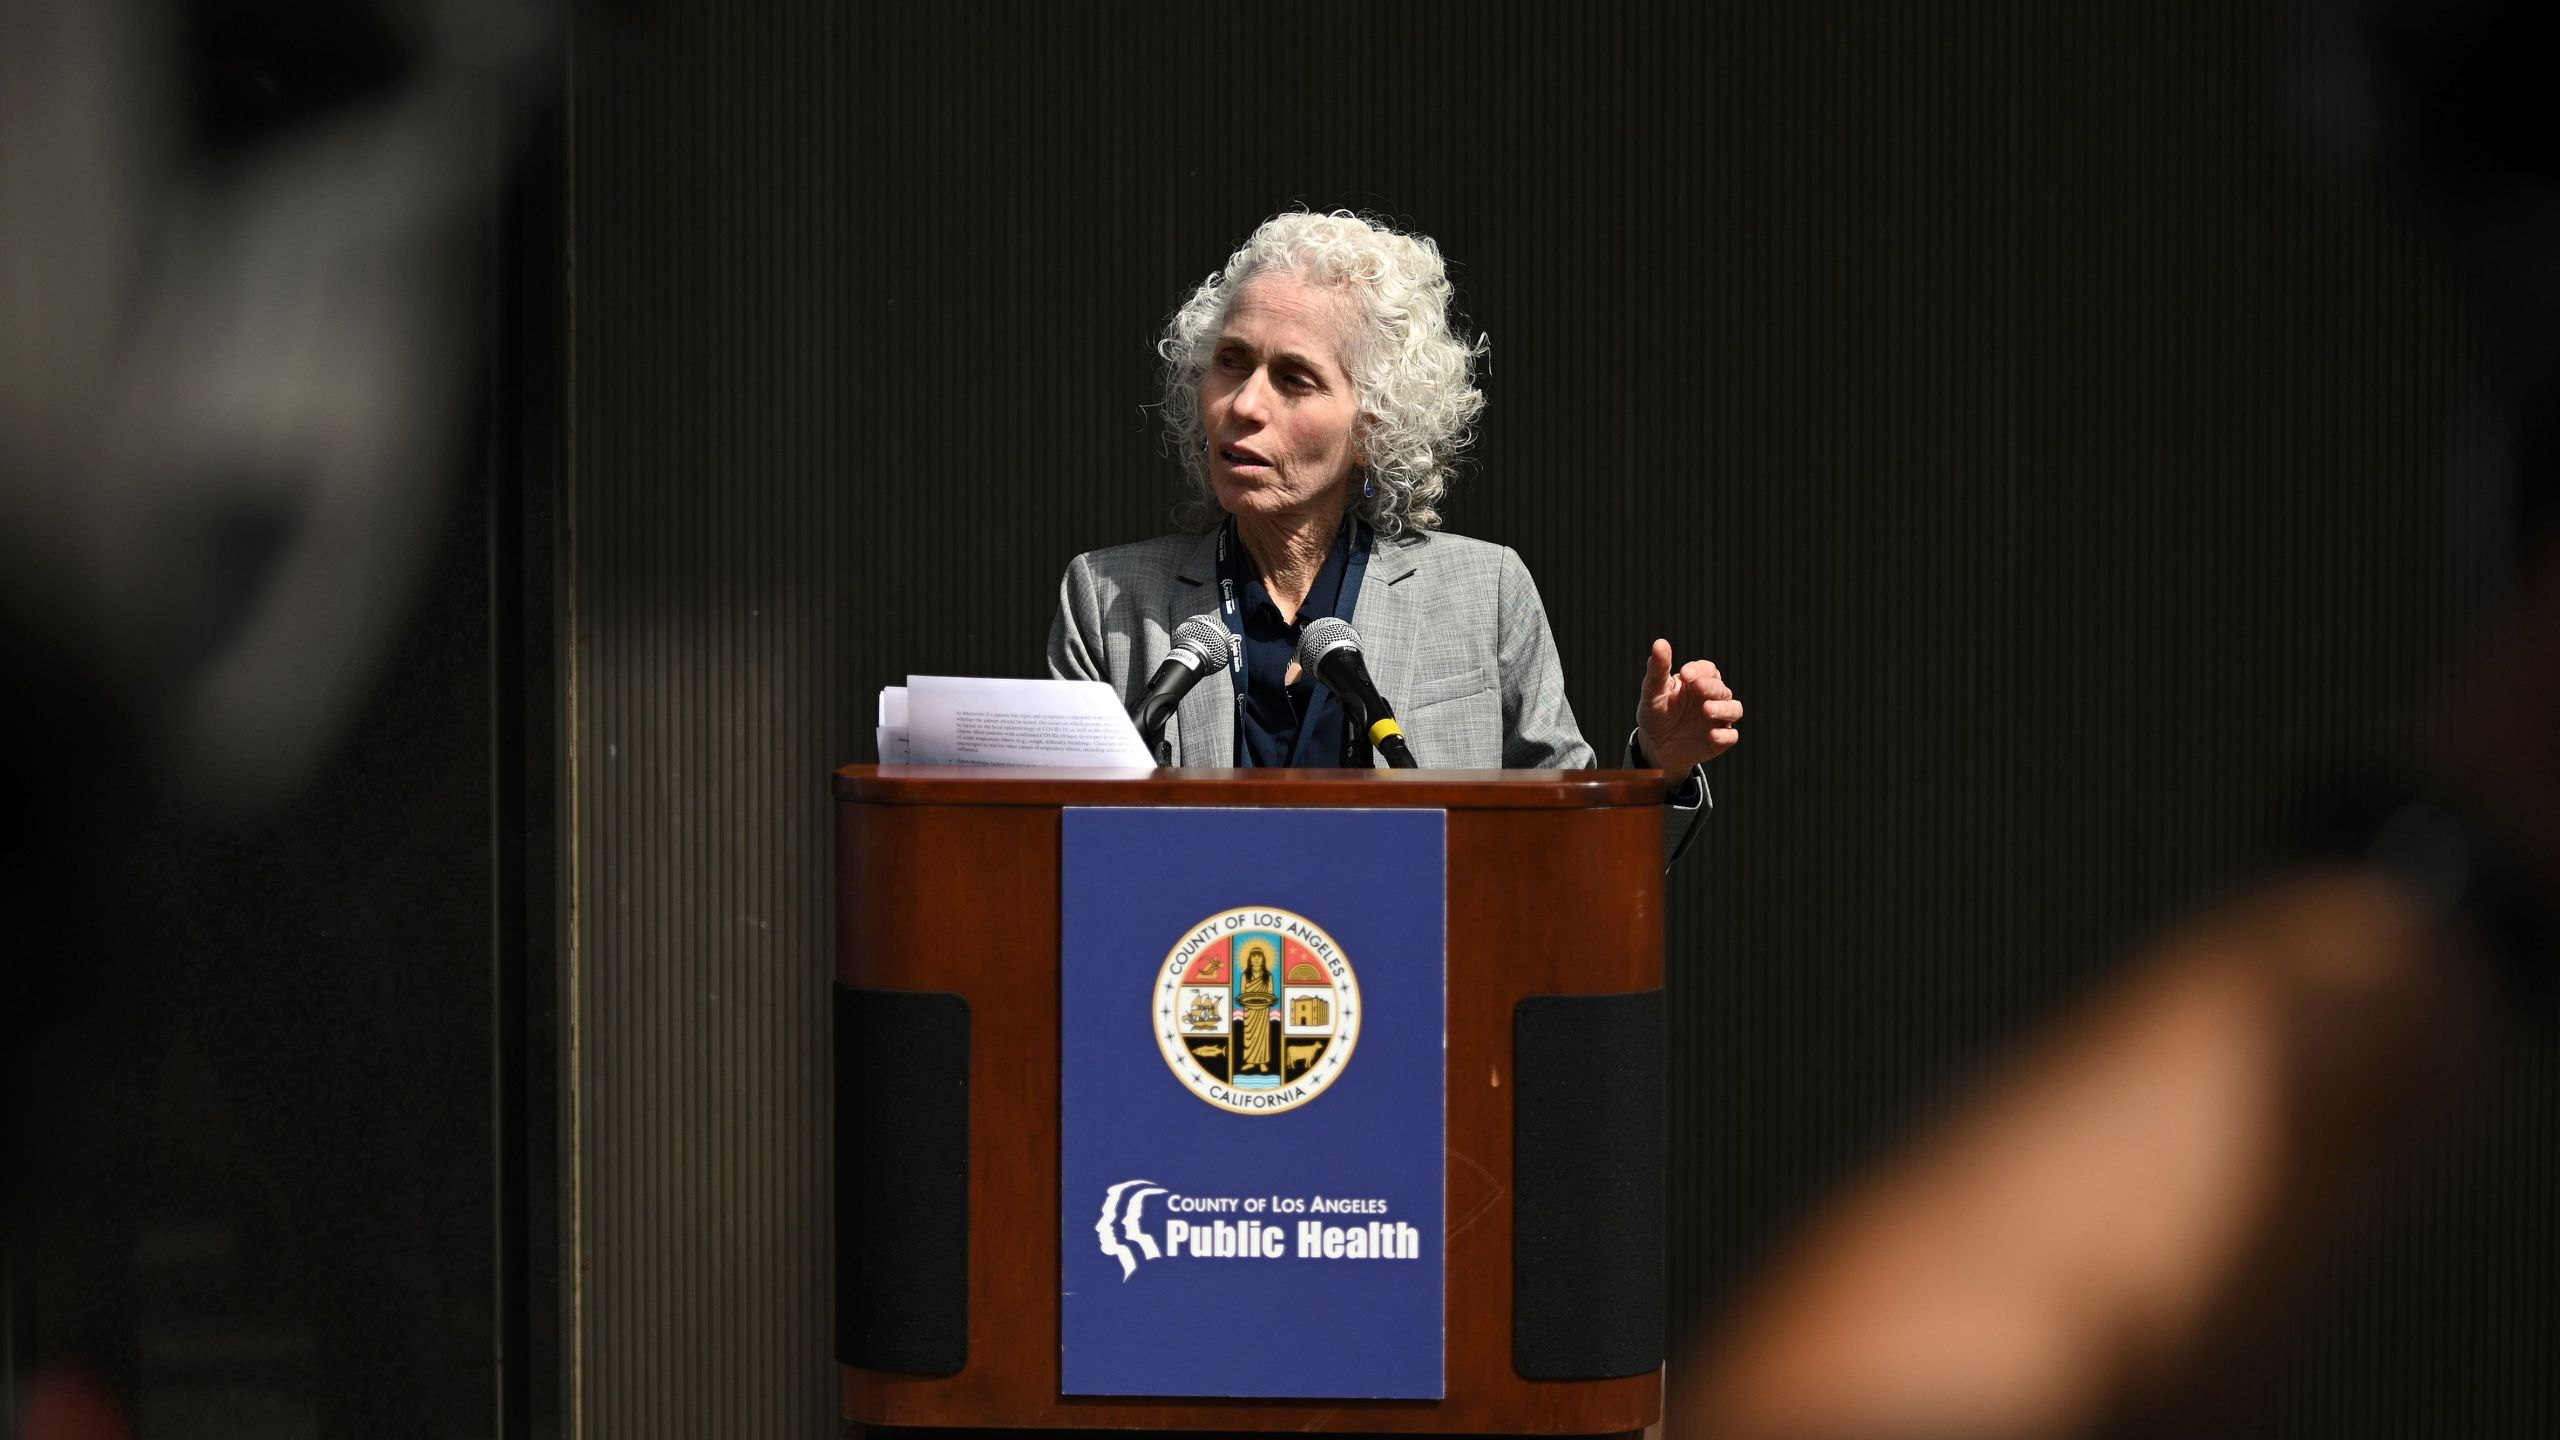 Los Angeles County Public Health director Barbara Ferrer speaks at a press conference on the novel COVID-19 (coronavirus), March 6, 2020 in Los Angeles, California. (Robyn Beck/AFP via Getty Images)